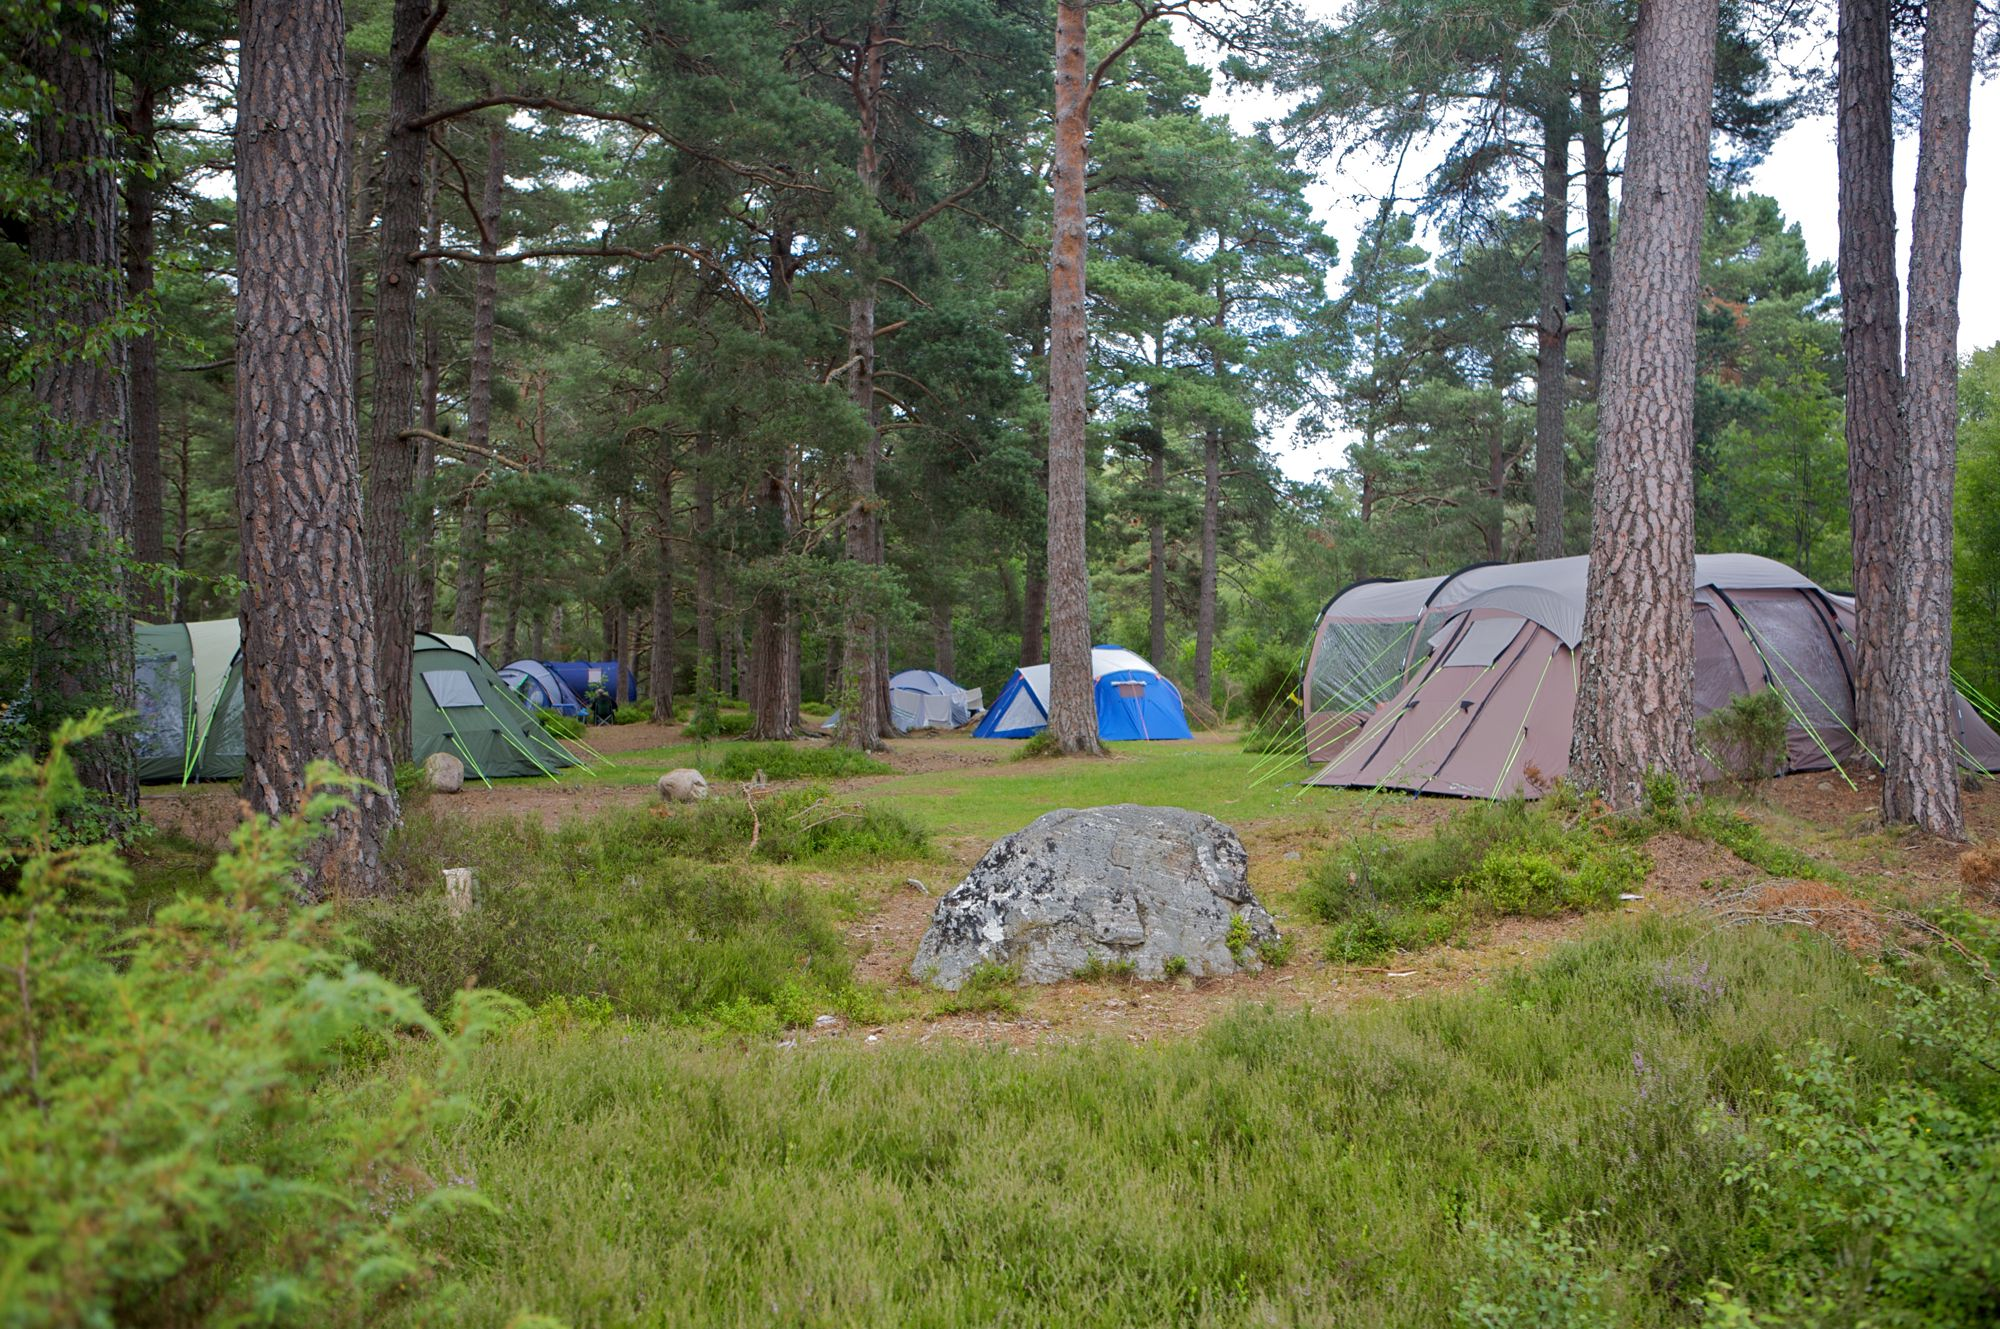 The Best Woodland Campsites – Camping in the trees and the forest